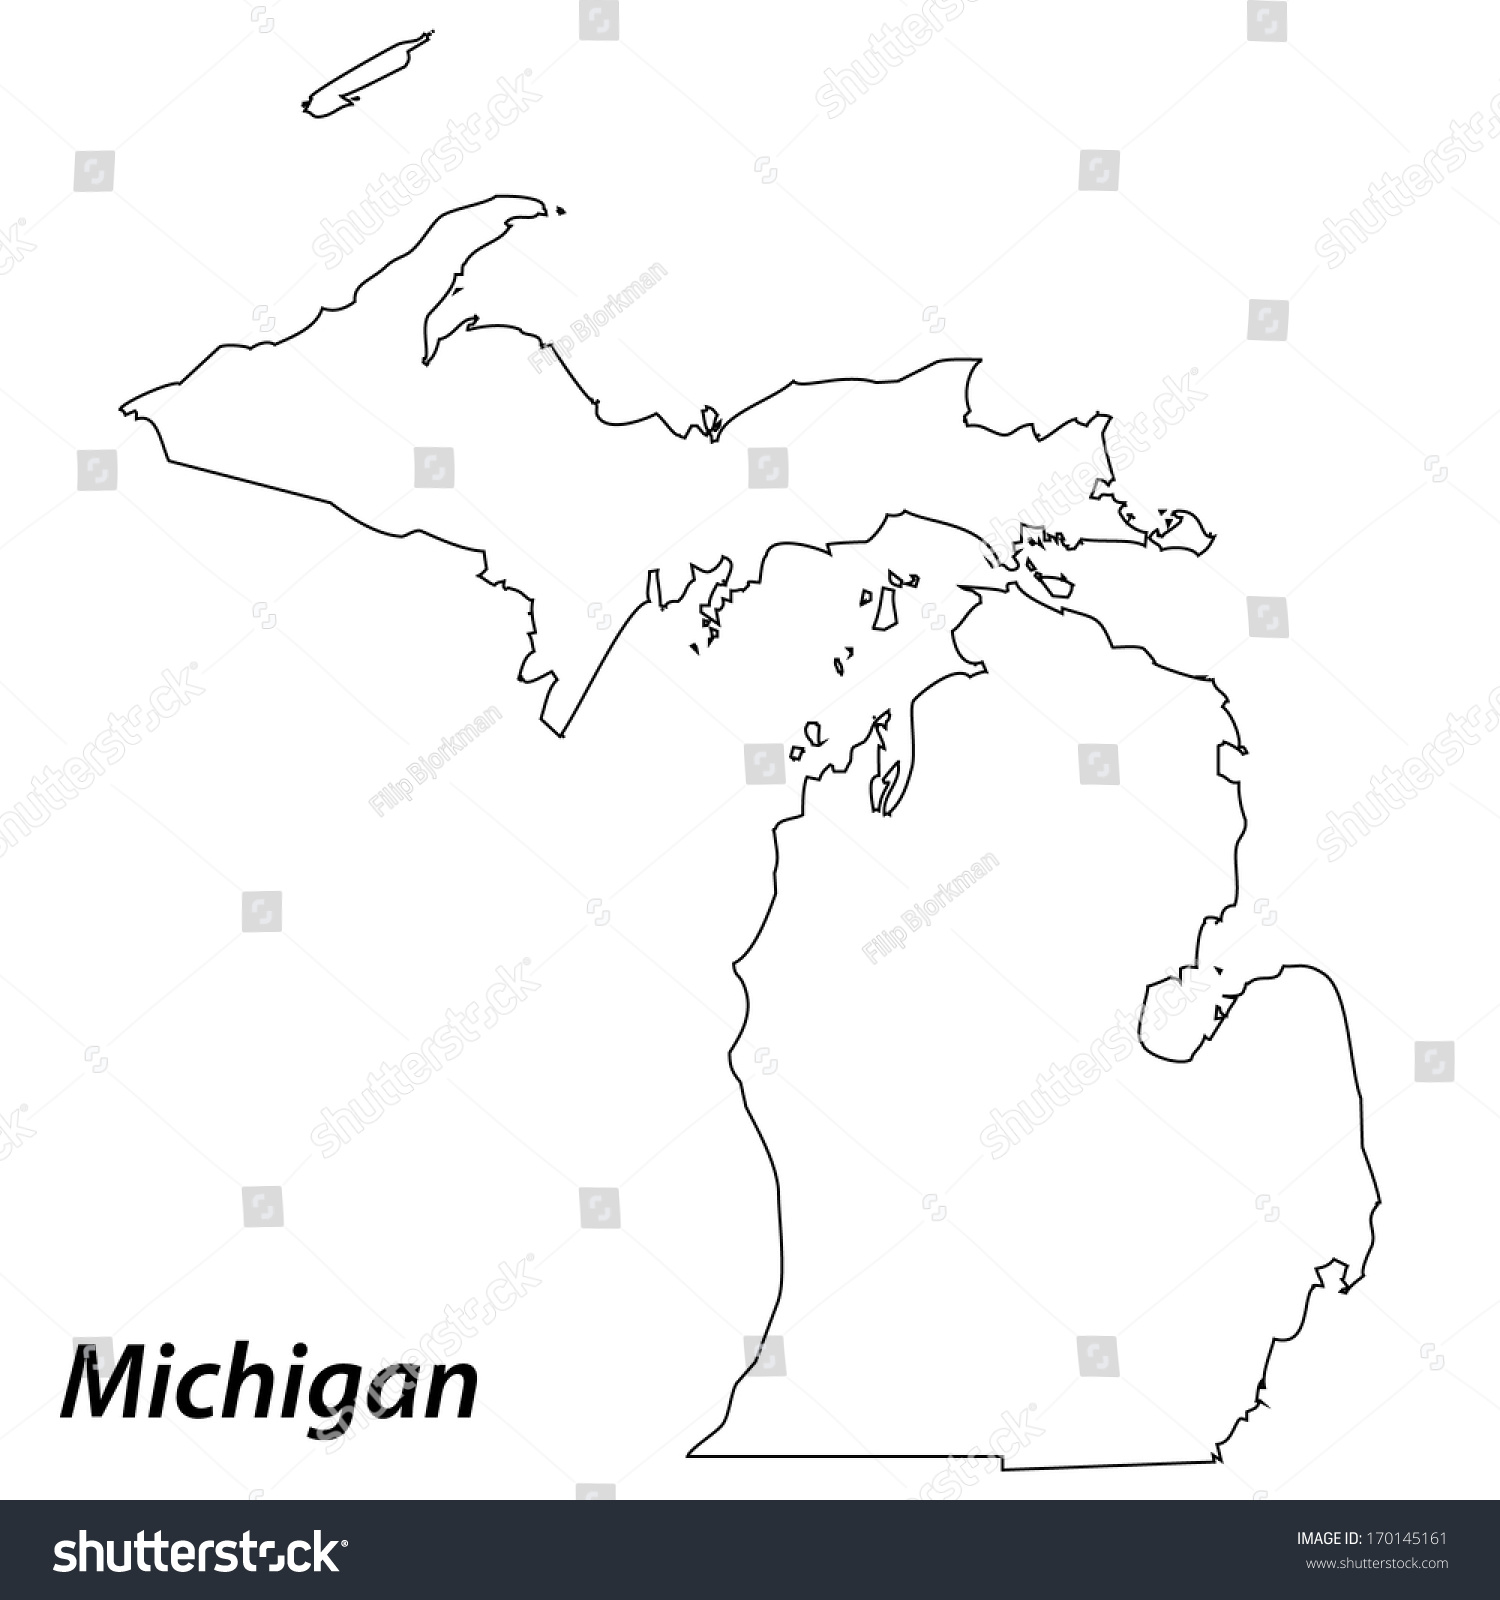 Michigan City Map Gulf Of Finland Map - Michigan on a us map